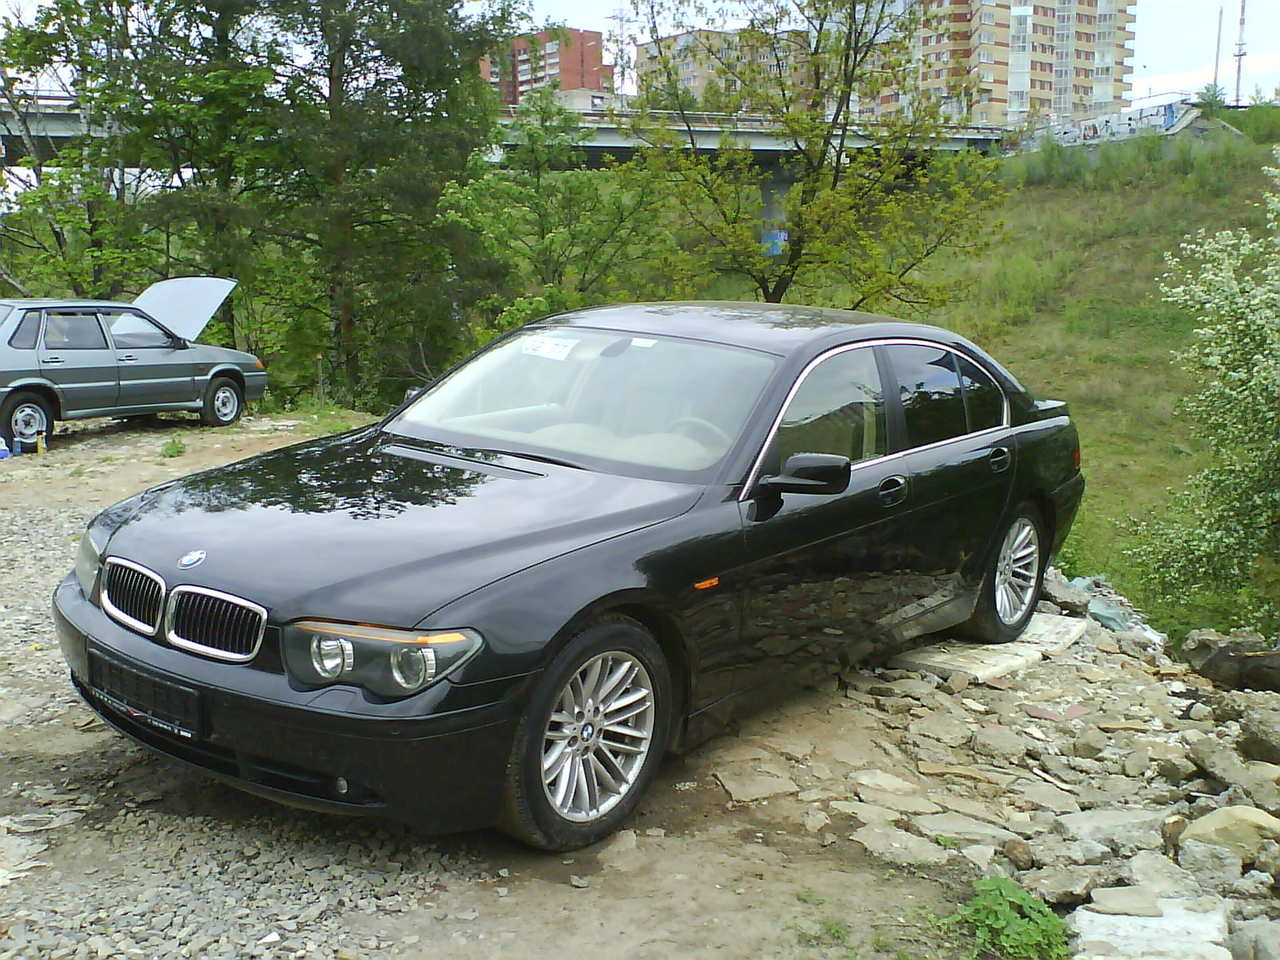 used 2003 bmw 7 series photos 4398cc gasoline fr or rr automatic for sale. Black Bedroom Furniture Sets. Home Design Ideas